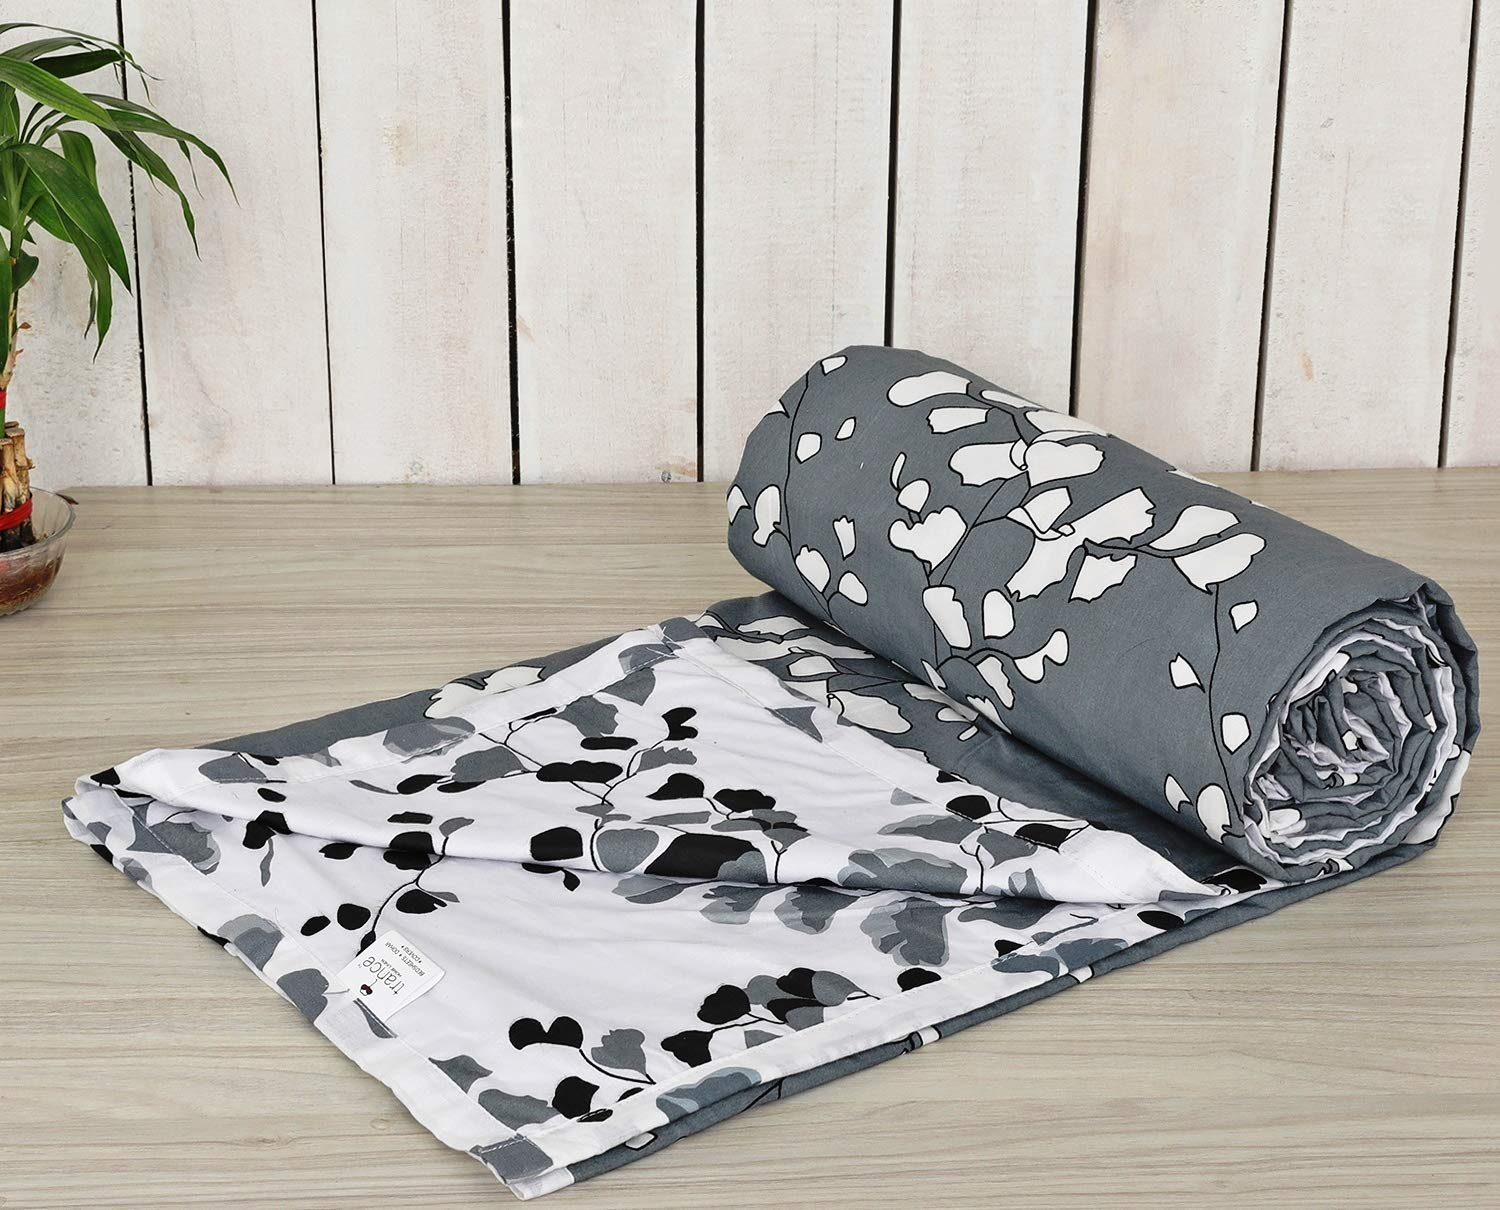 Trance Home Linen Cotton Single Dohar-LEAVES Grey White